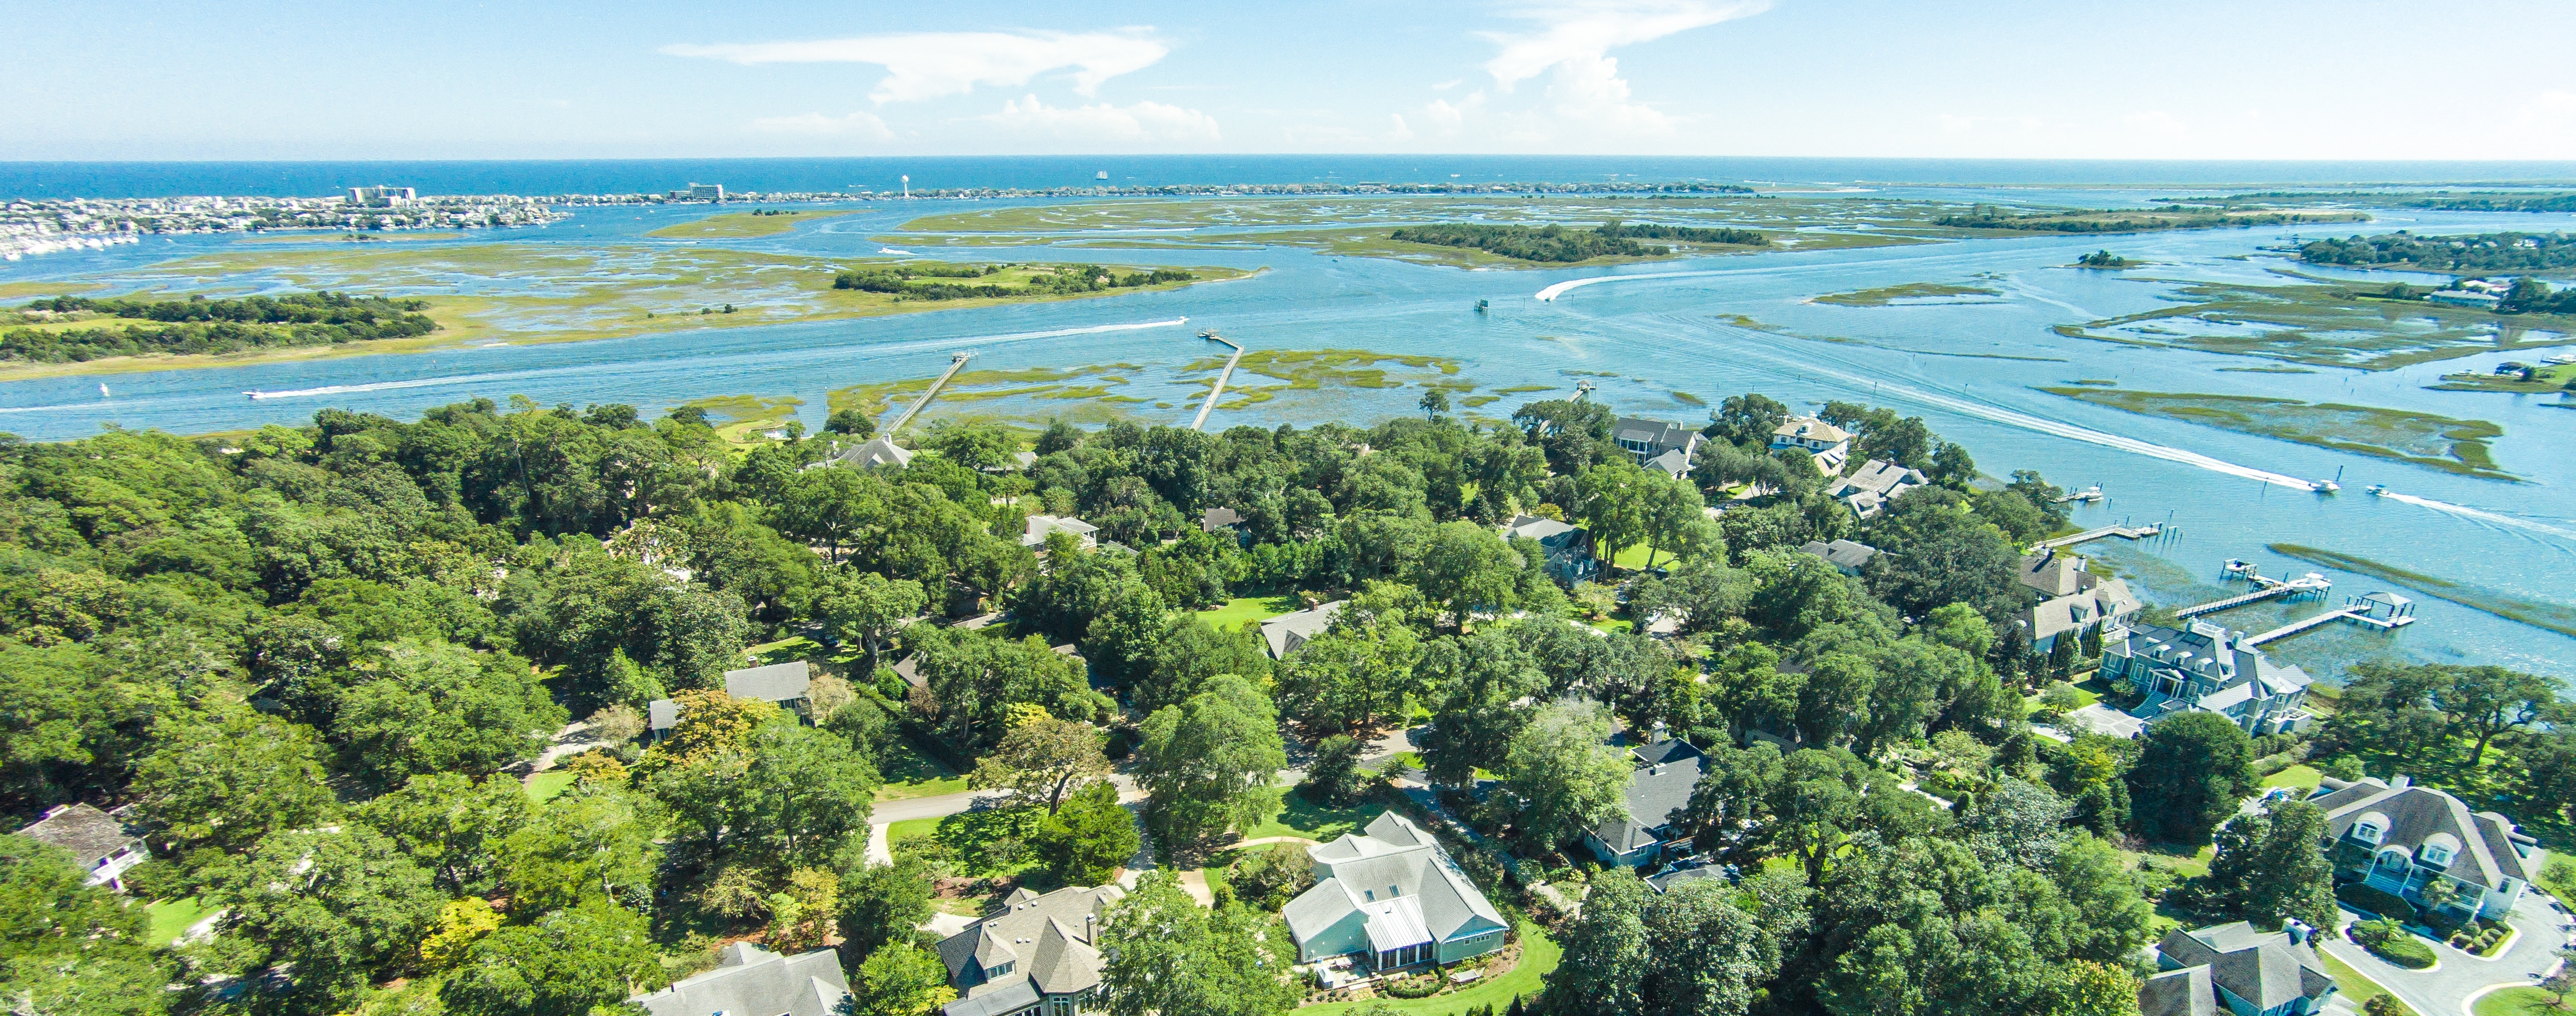 airlie-road-homes-for-sale-wilmington-nc